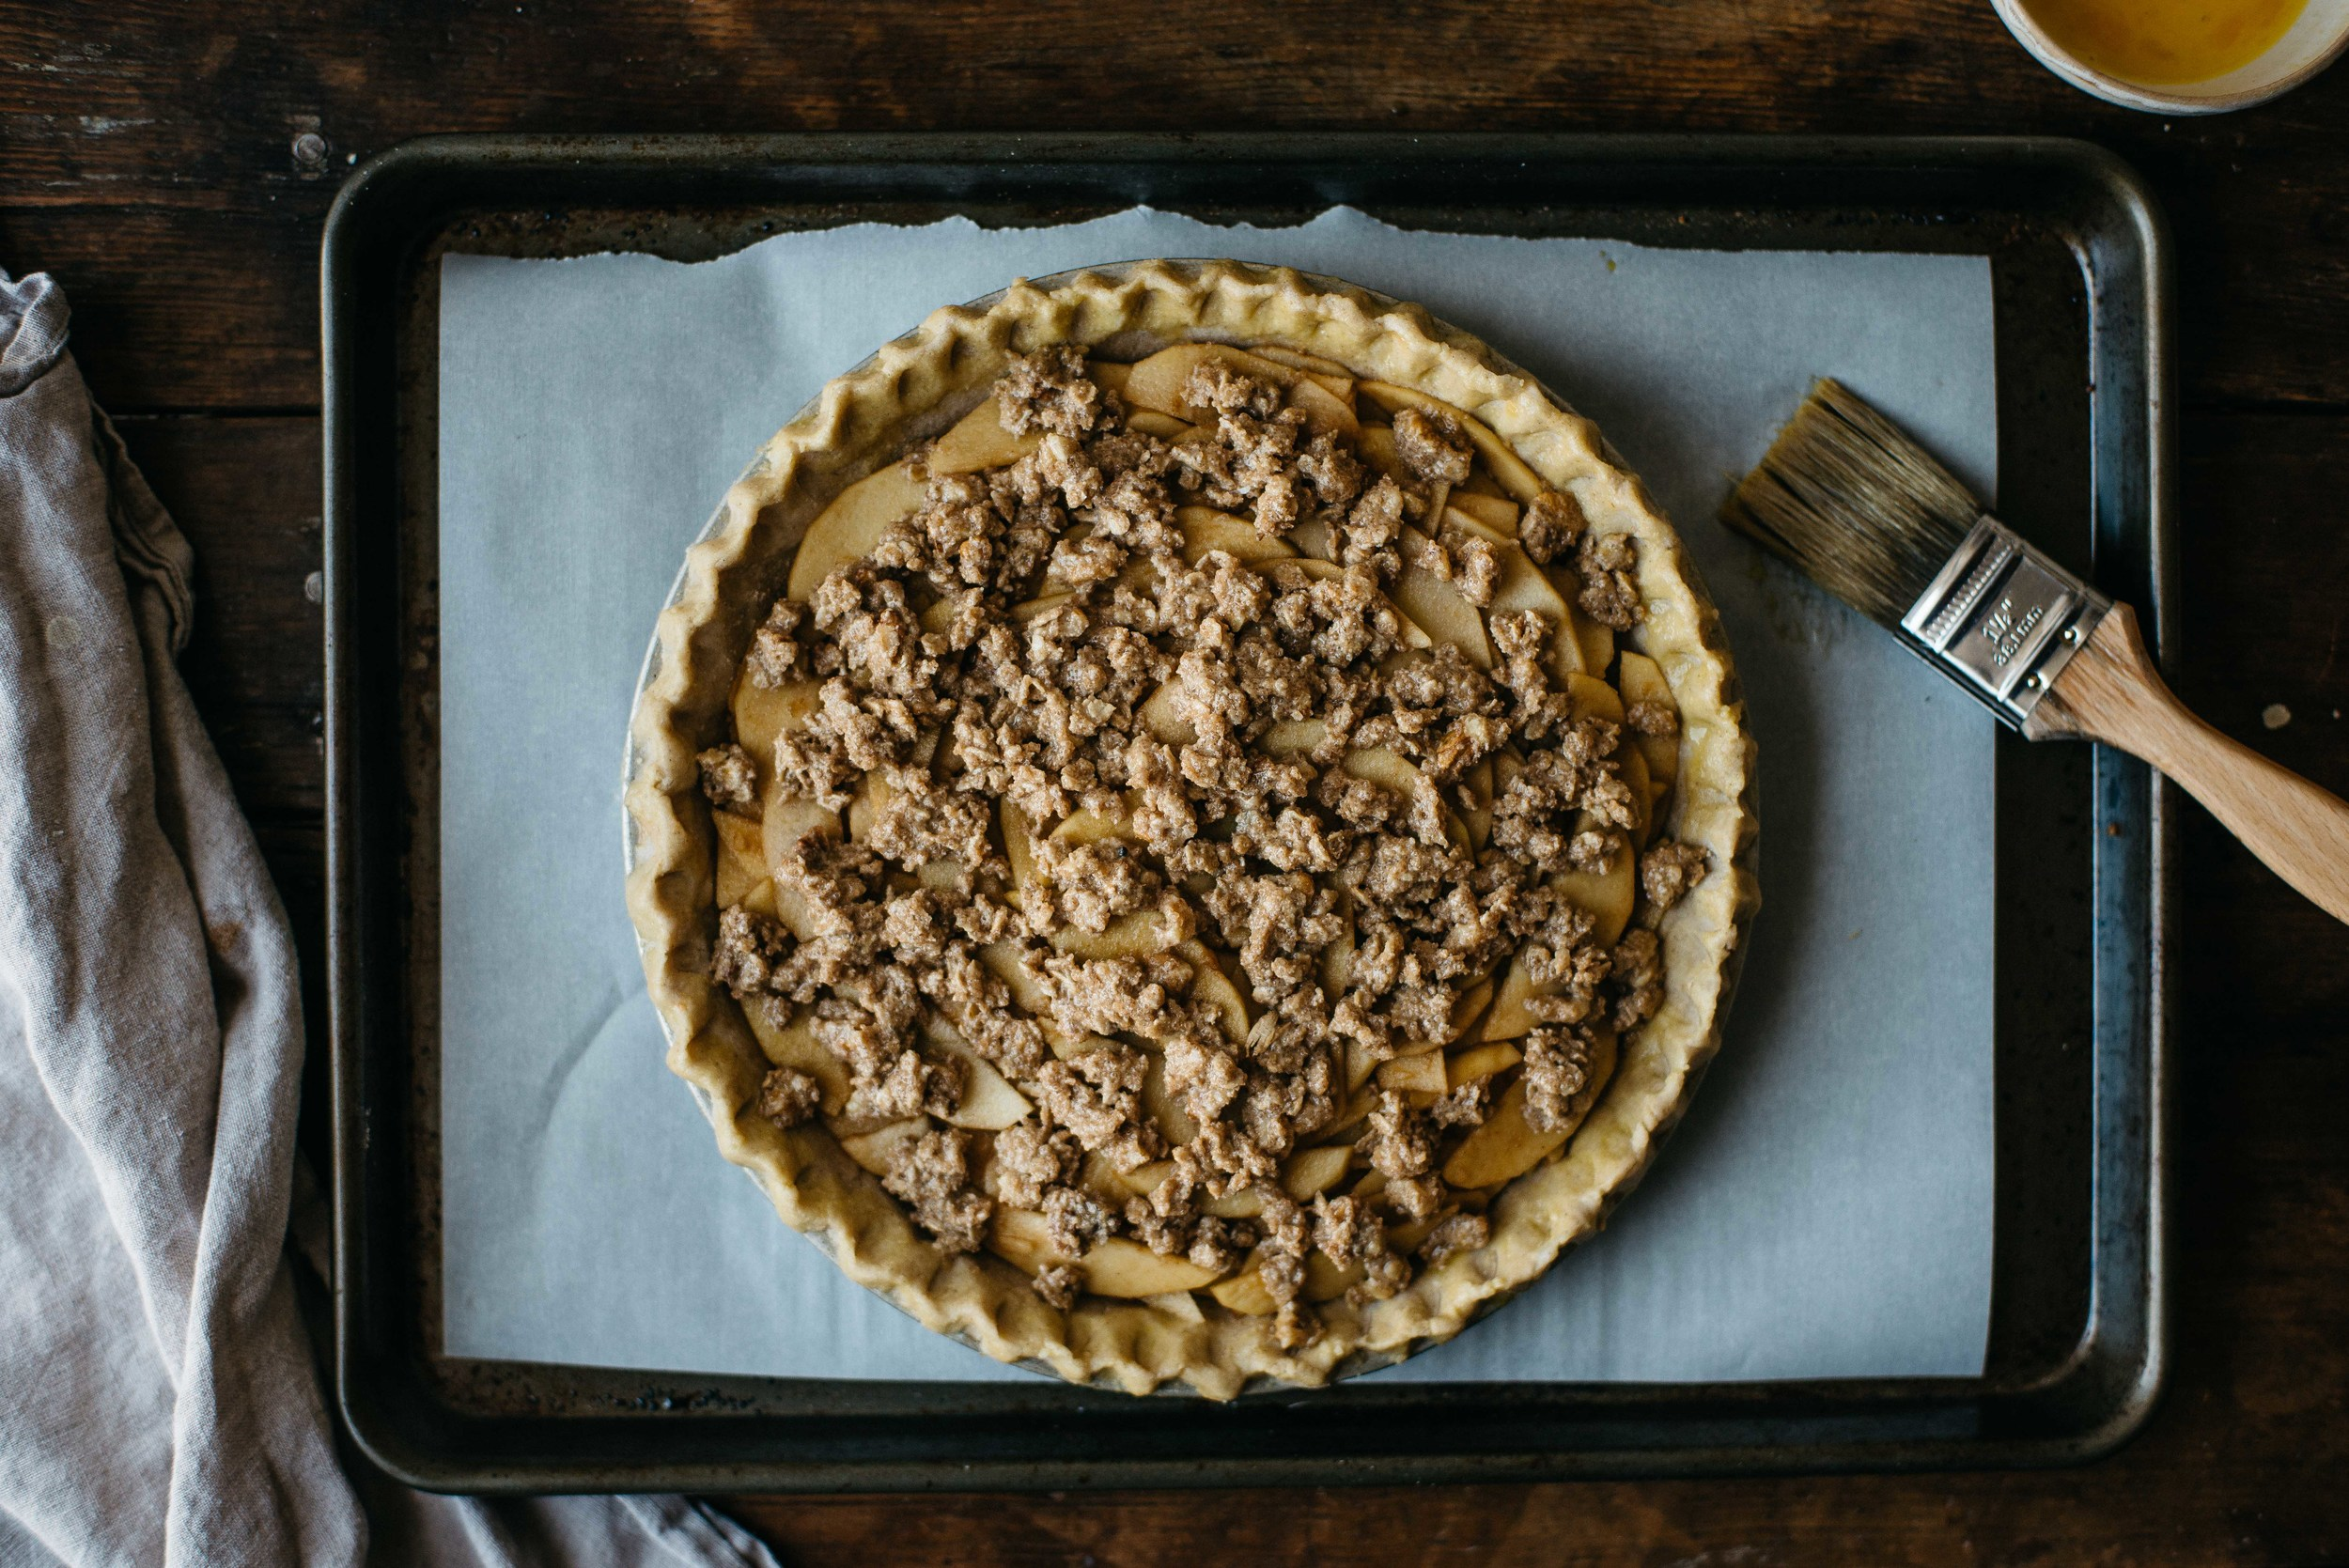 ginger-apple crumble pie | dolly and oatmeal